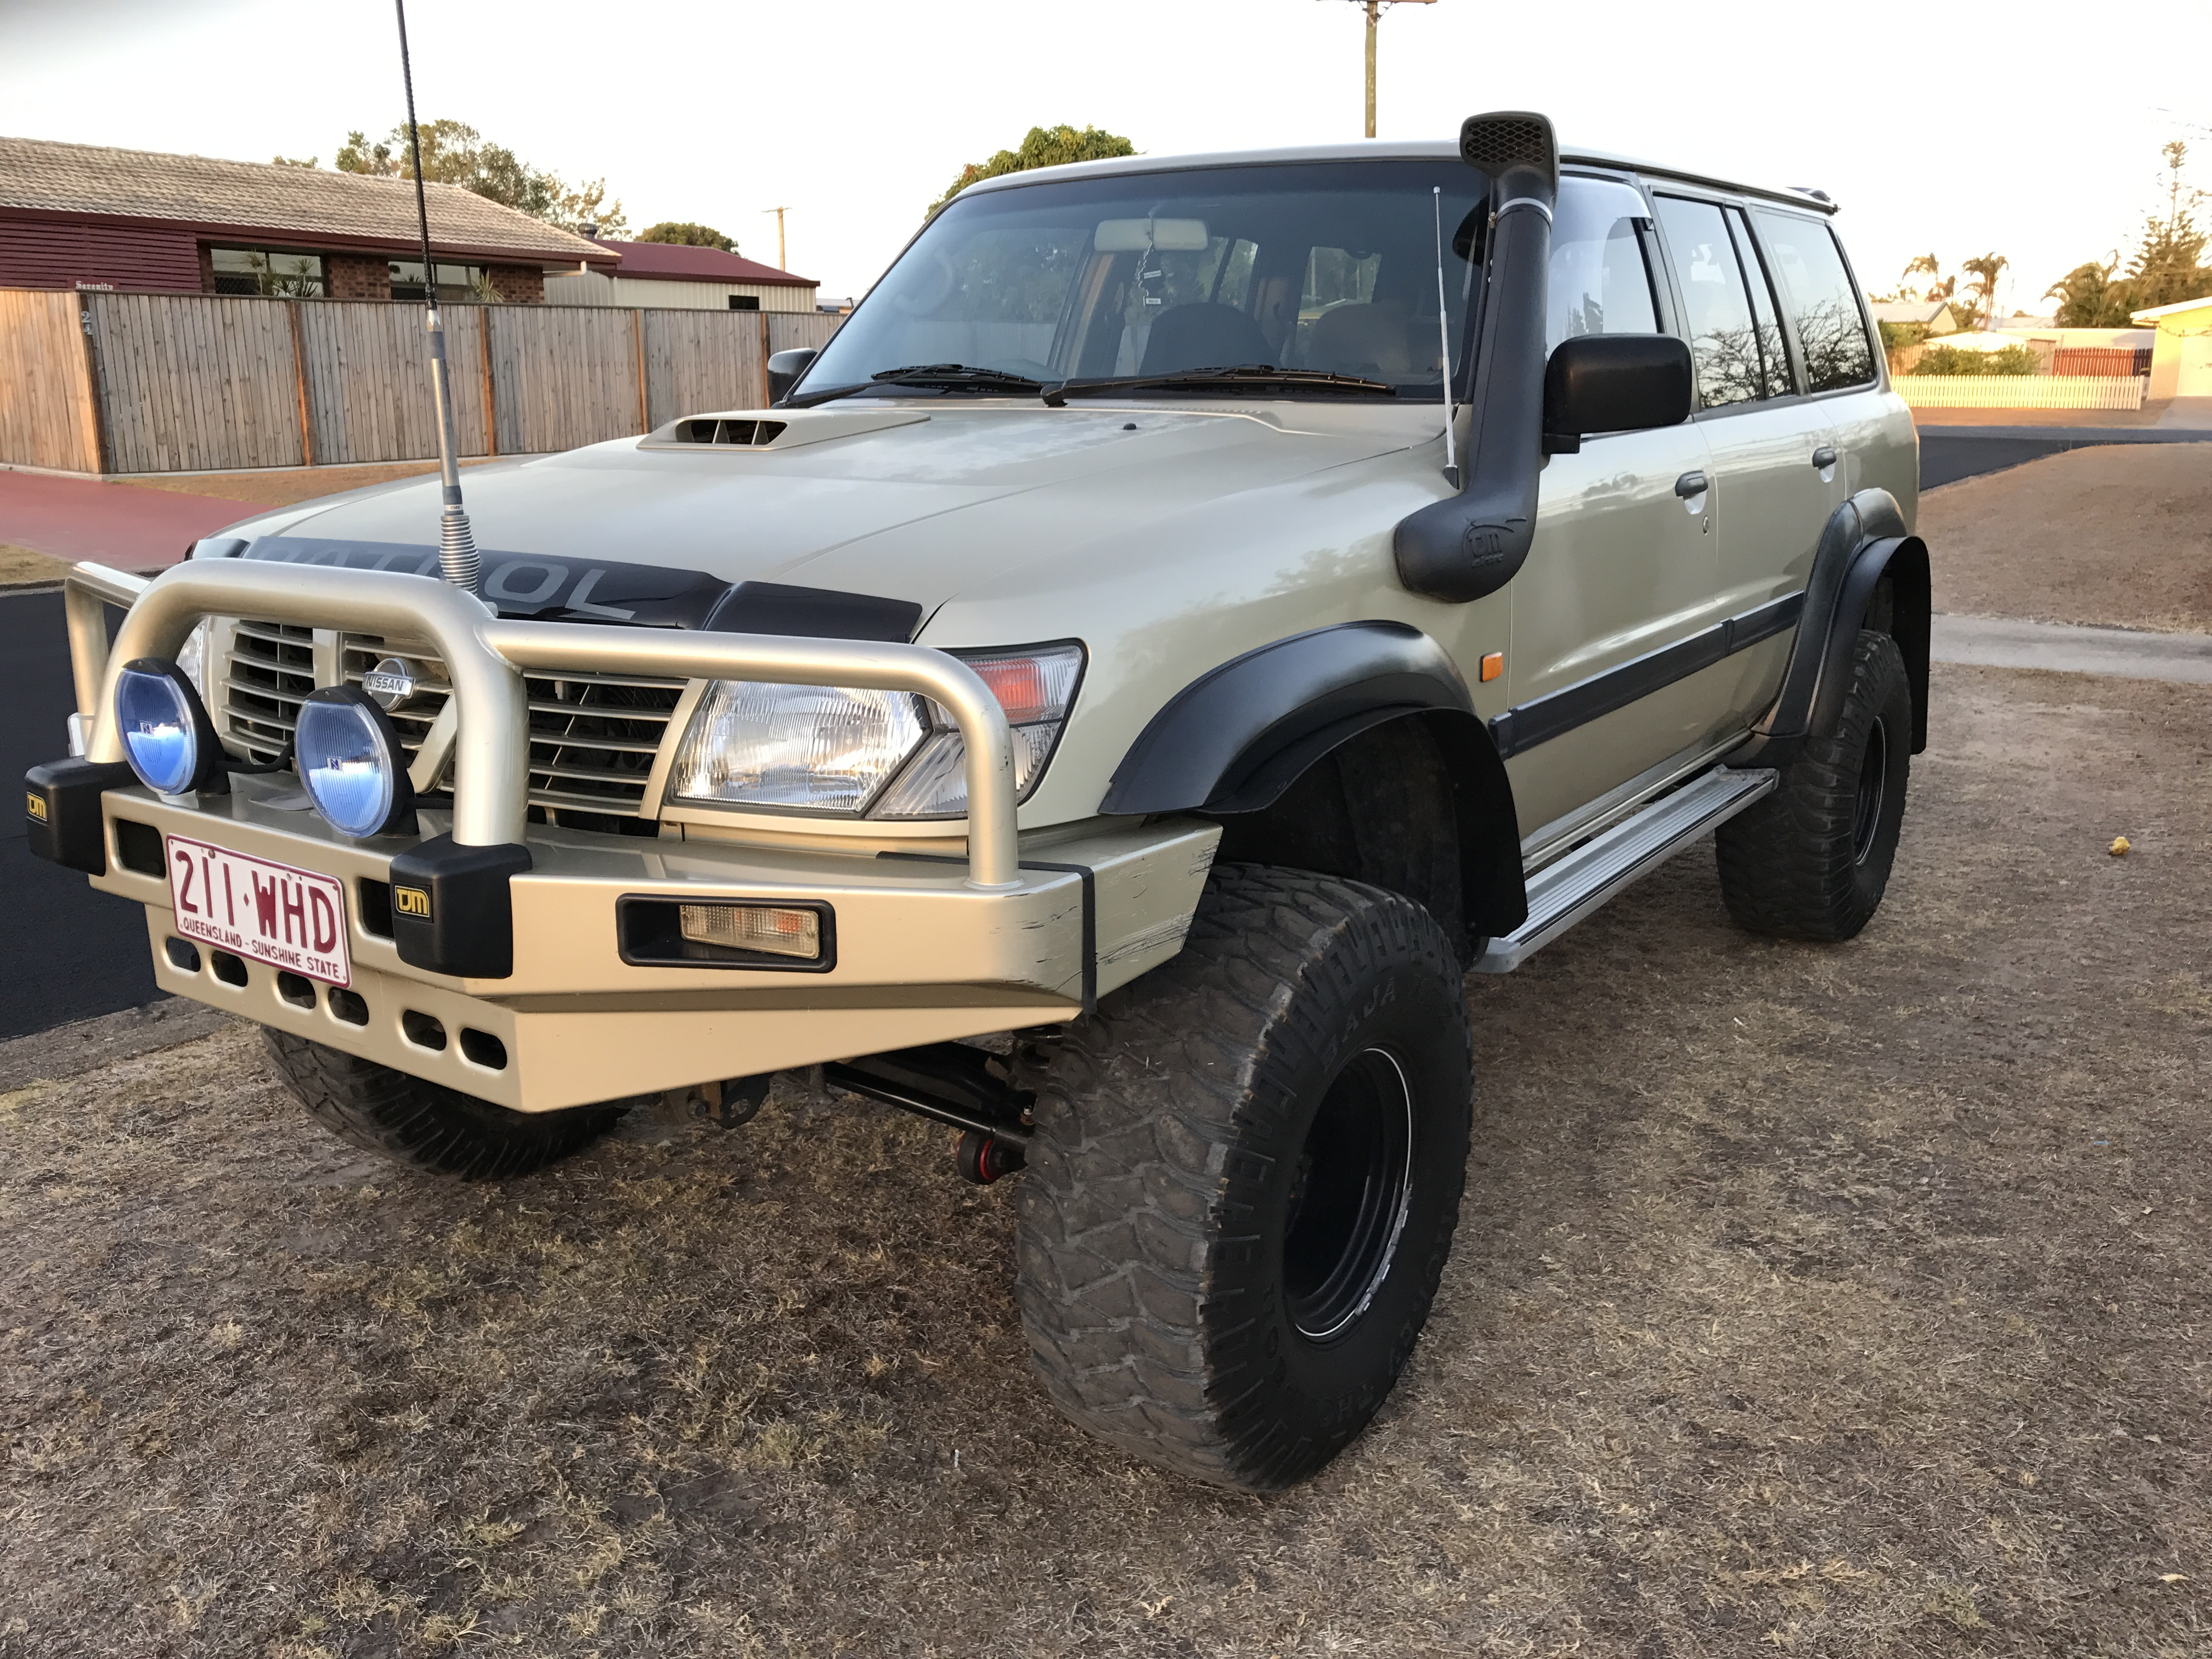 2001 nissan patrol st 4x4 gu for sale or swap qld wide bay burnett 2997034. Black Bedroom Furniture Sets. Home Design Ideas